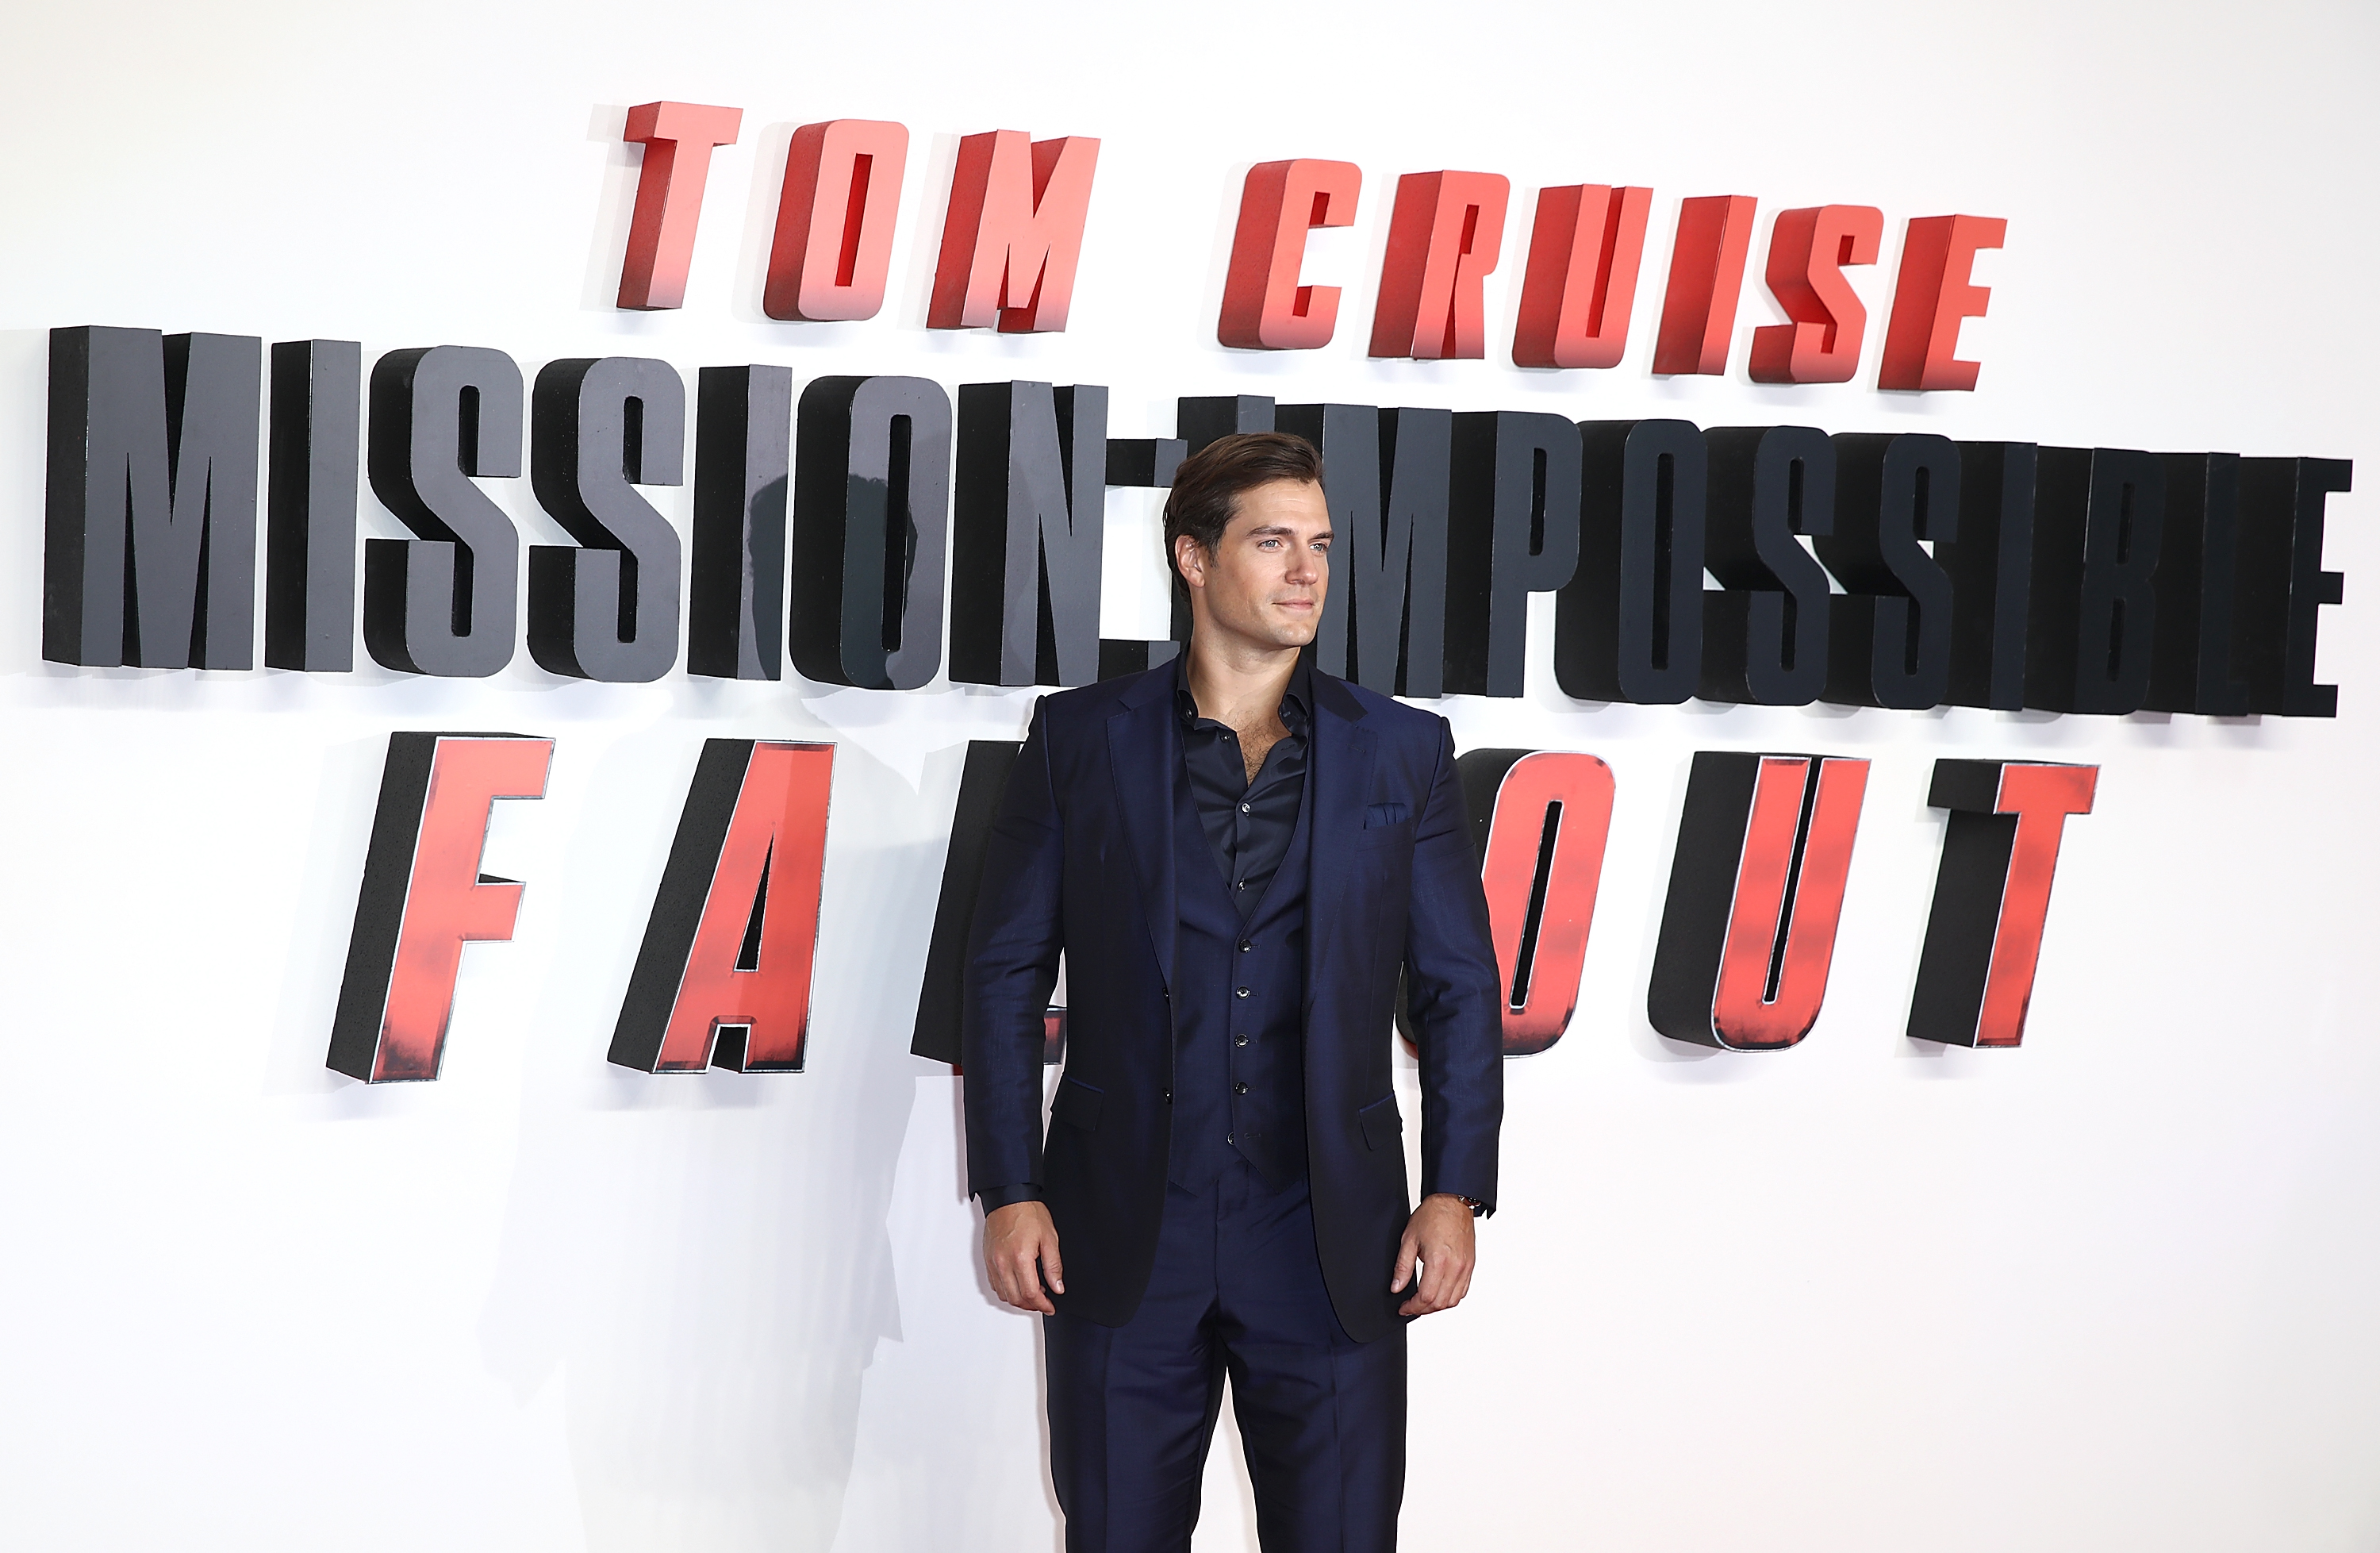 Henry Cavill 'Mission: Impossible - Fallout' UK Pr